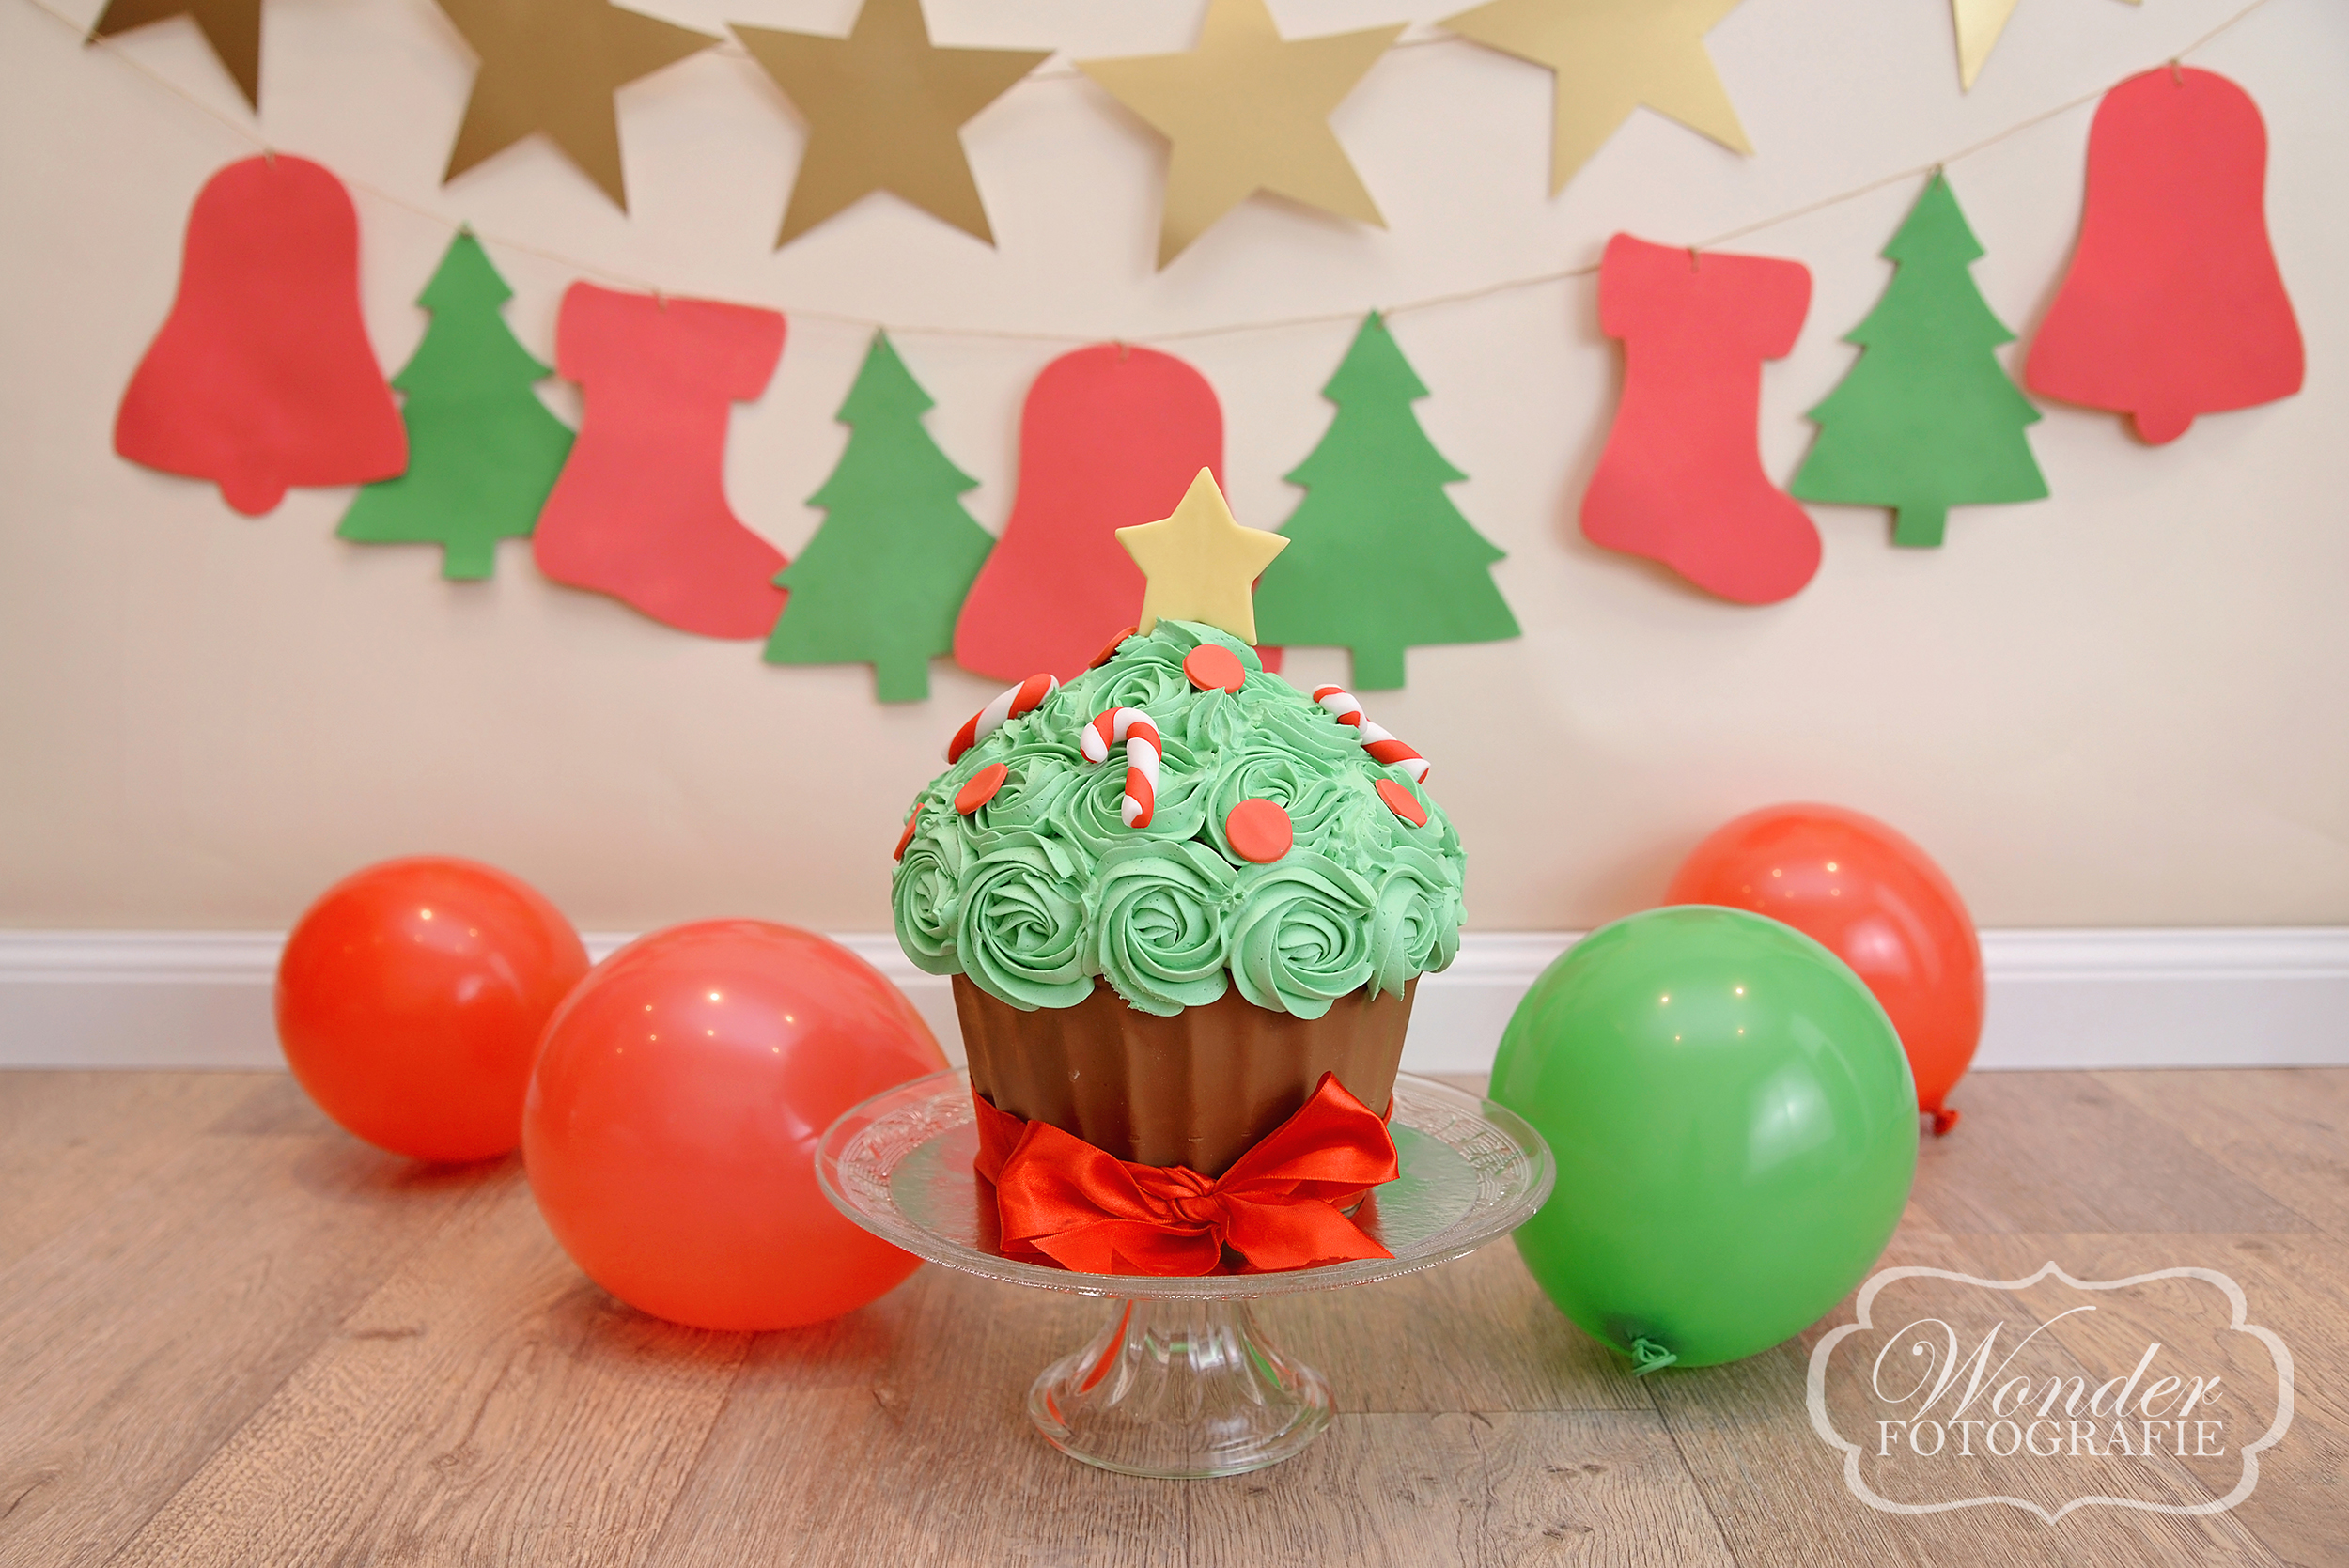 kerst thema cake smash fotoshoot almere christmas theme photoshoot